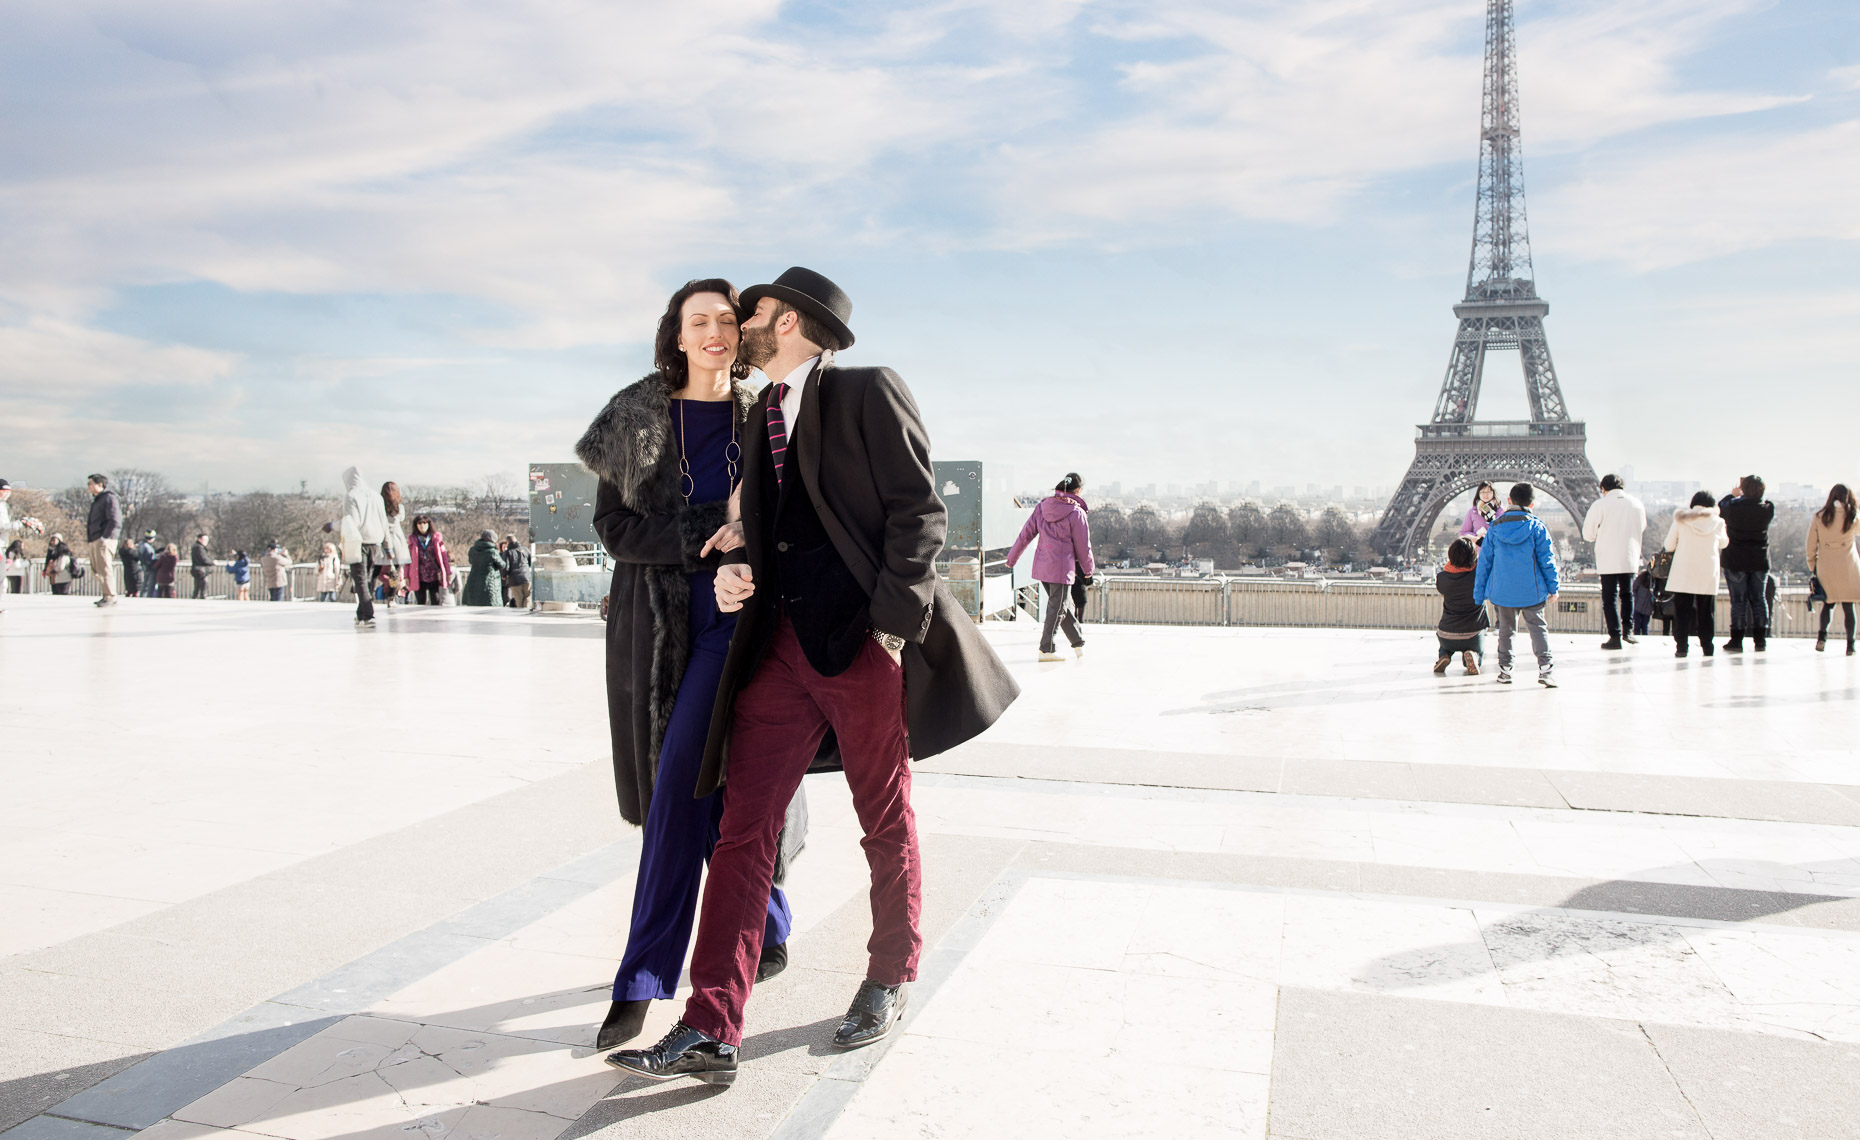 paris-couple-eiffel-tower-ad-advertisement-curtis-myers